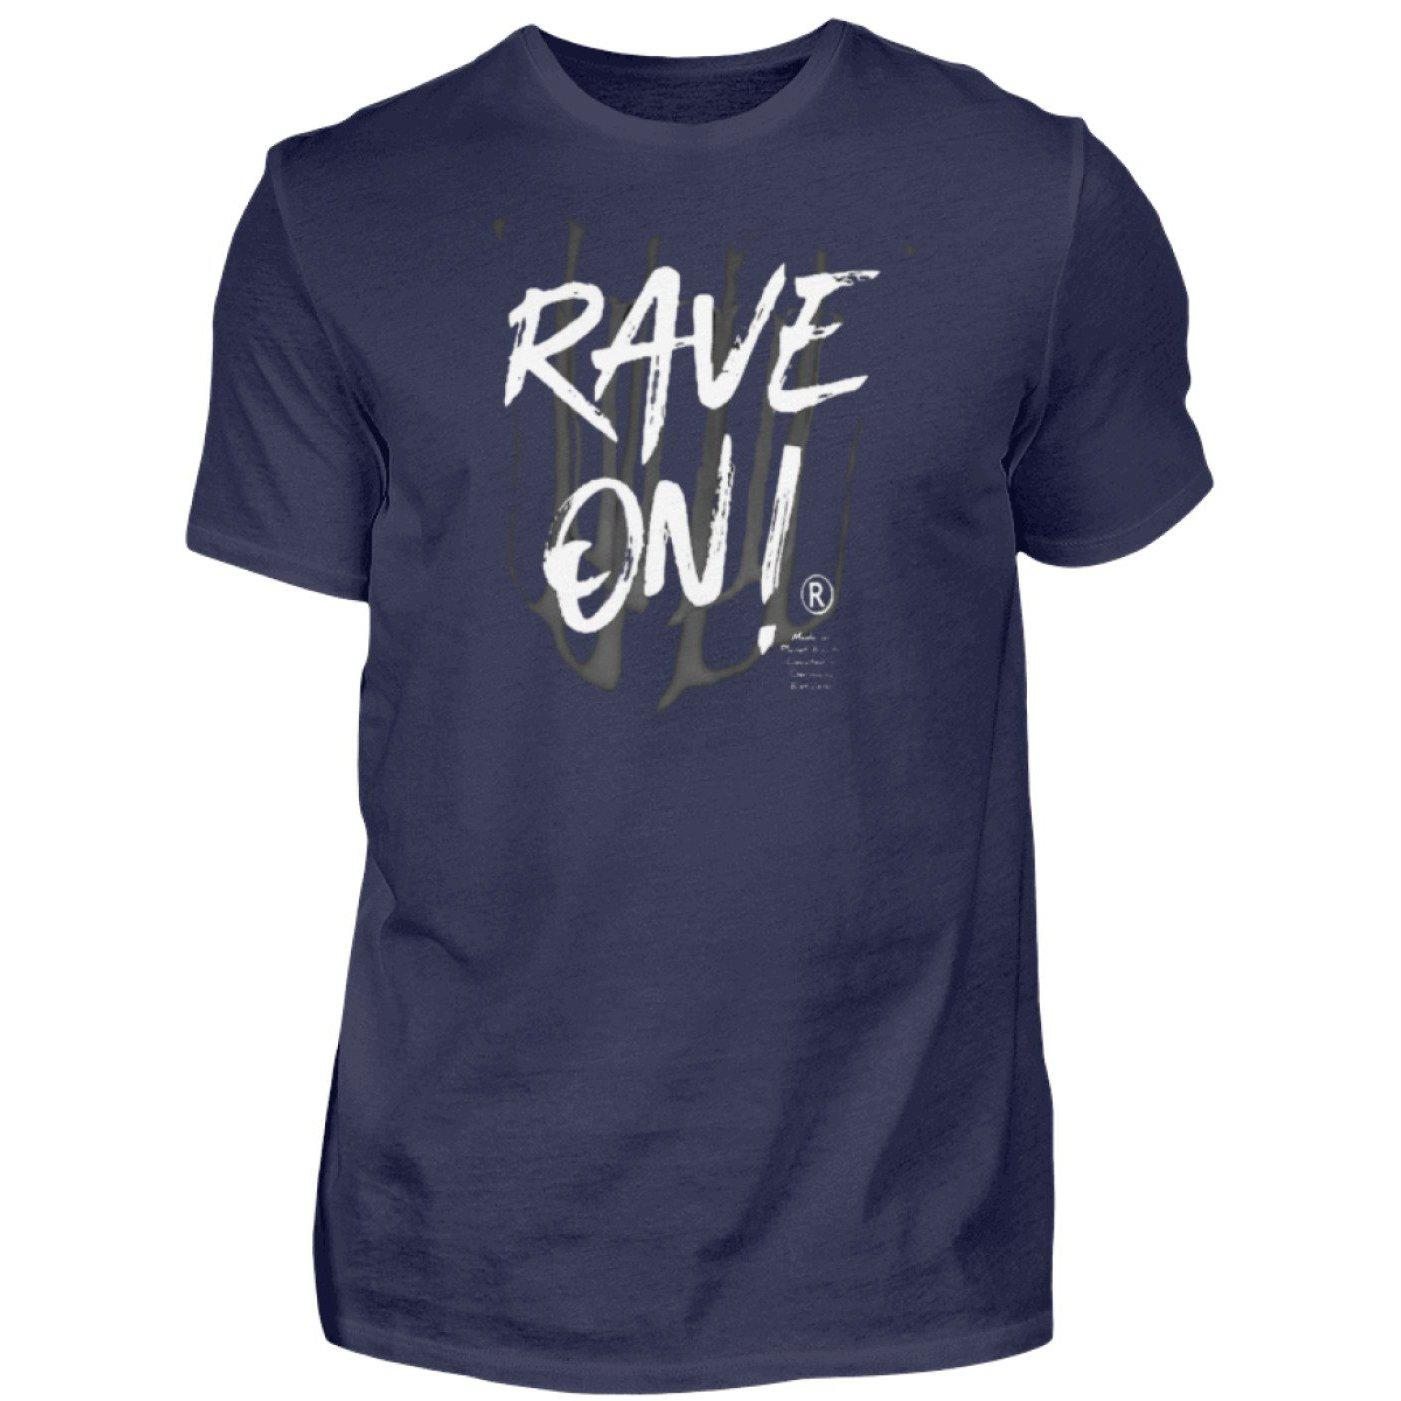 Rave On!® - Made On Planet Earth B2k20 - Herren Premiumshirt Herren Premium Shirt Navy / S - Rave On!® der Club & Techno Szene Shop für Coole Junge Mode Streetwear Style & Fashion Outfits + Sexy Festival 420 Stuff